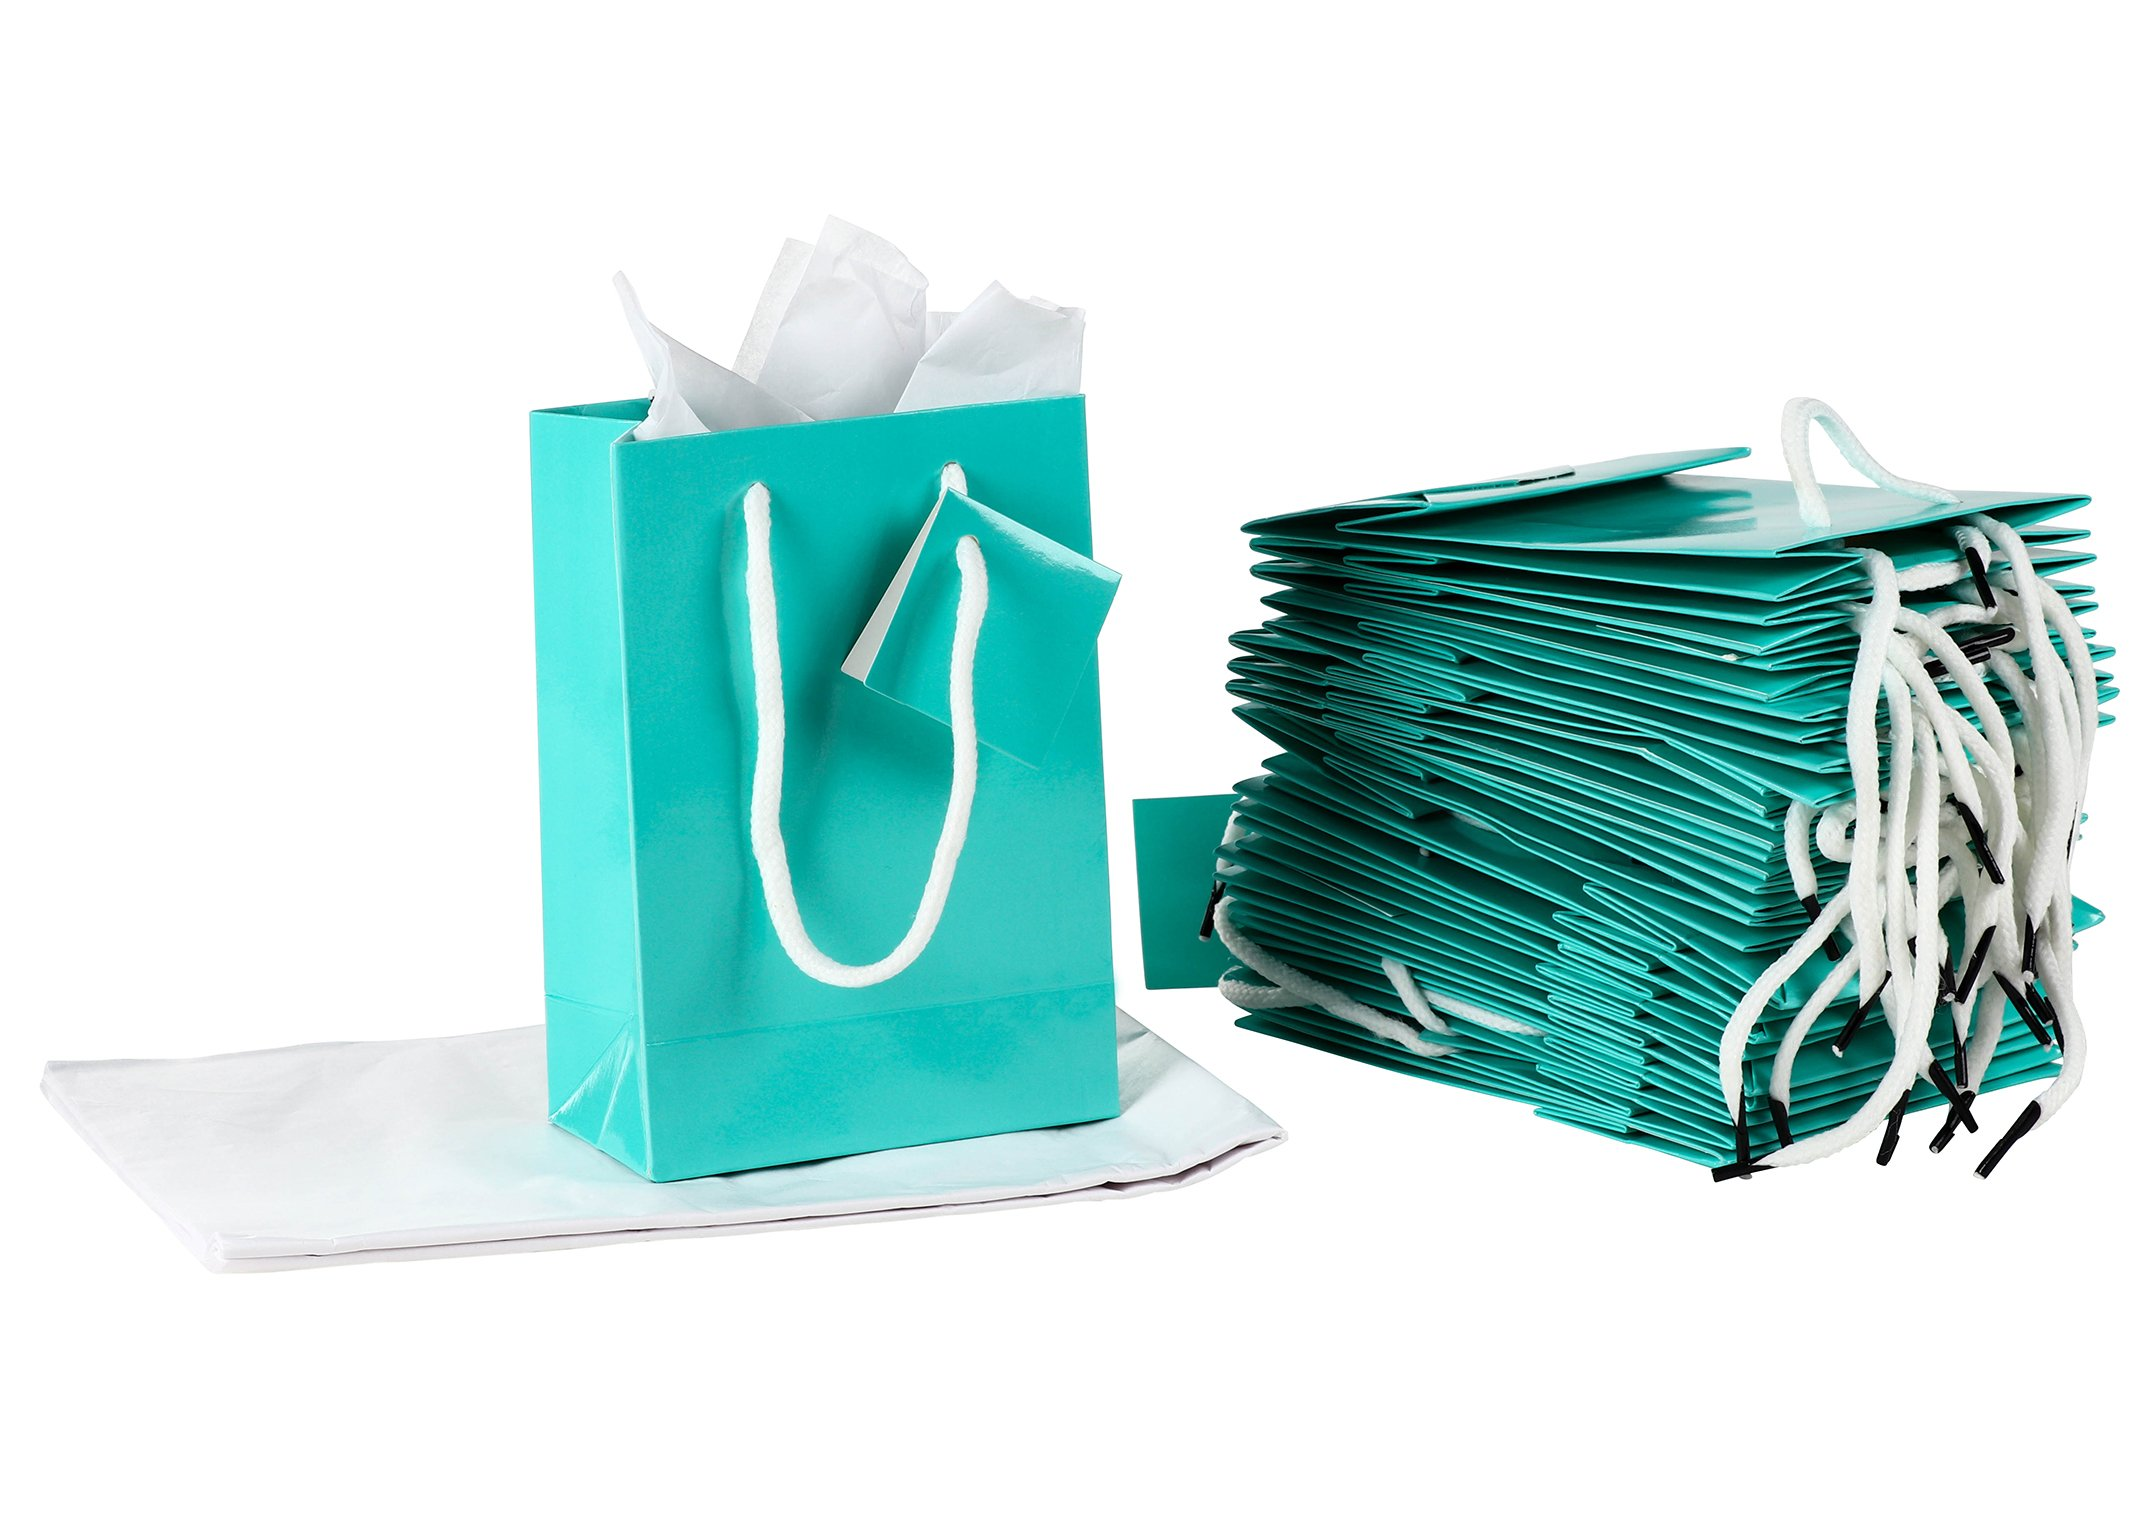 Paper Gift Bag - 20-Pack Small Party Favor Bags, Mini Paper Bags, Tissue Paper Included, Glossy Finish Teal Color, 4.75 x 6.75 x 2.5 inches